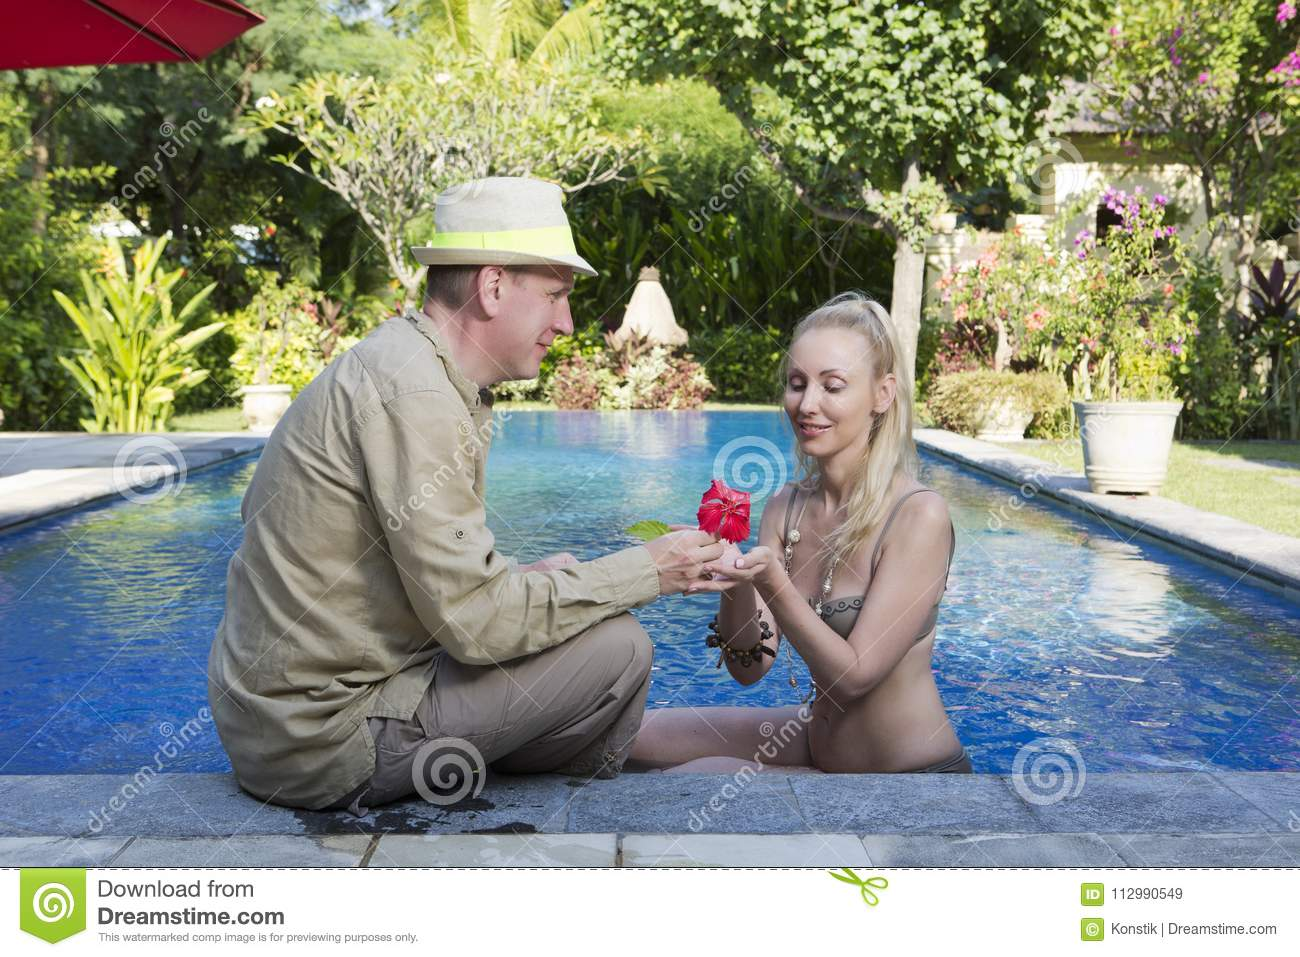 Loving couple in the pool in a garden with tropical trees. The man embraces the woman